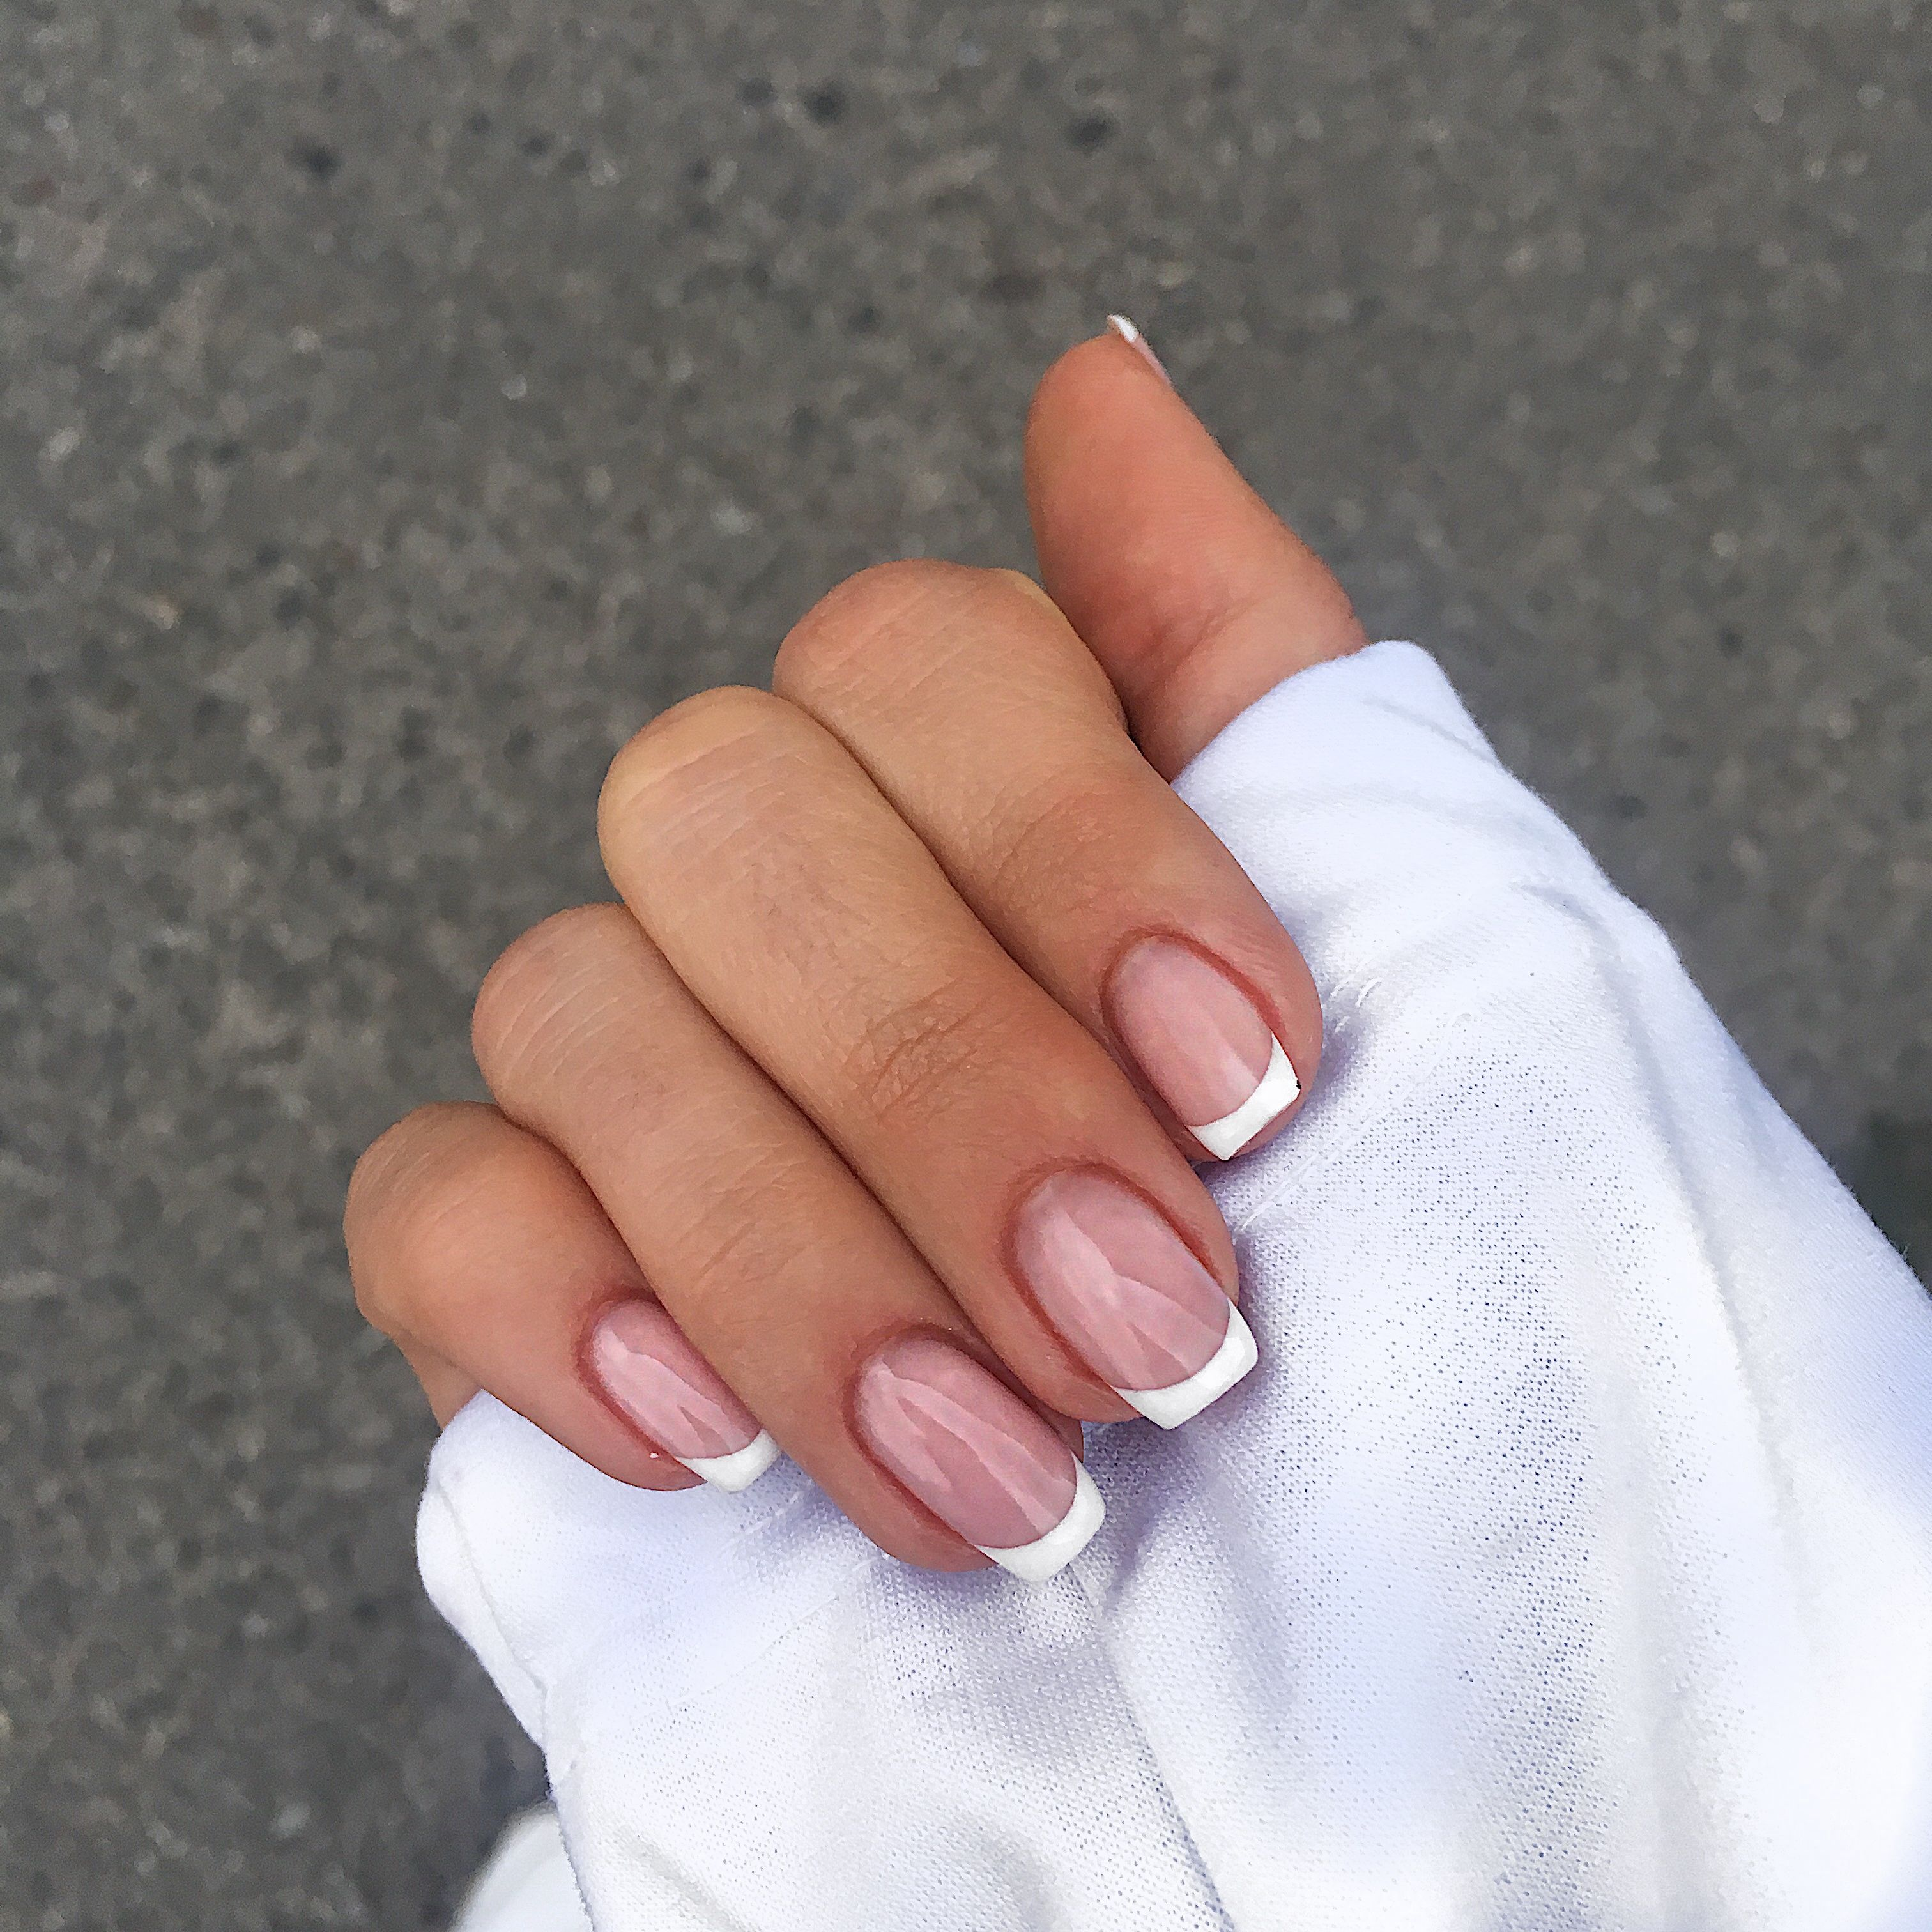 Pin By Dumitra Dayana On Super Nails Idei Unghii Unghii